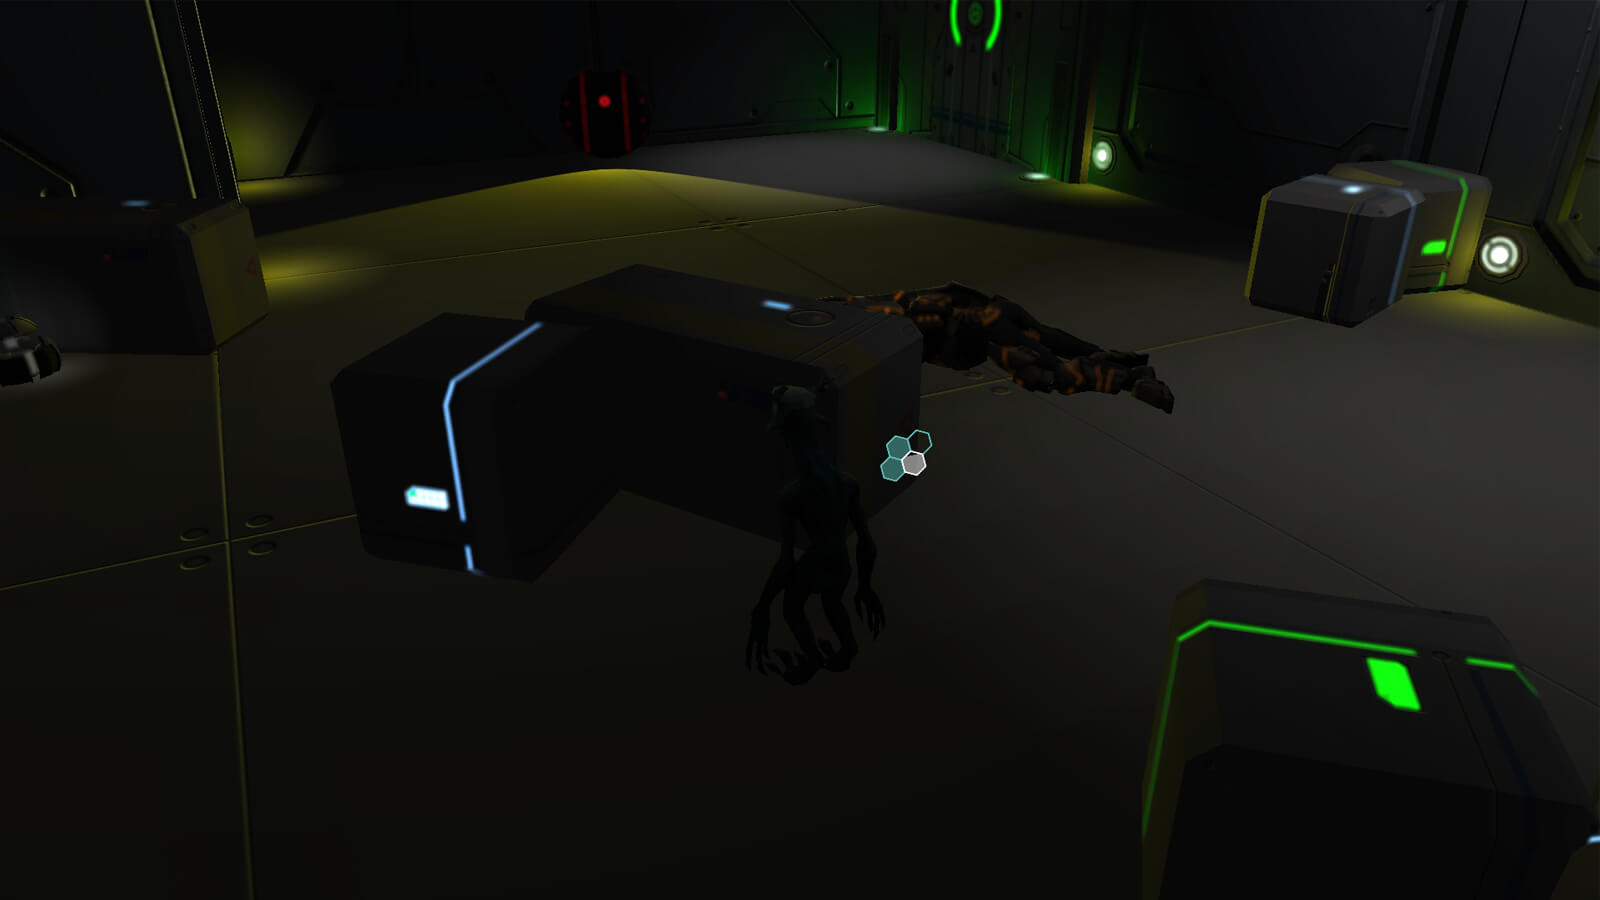 An alien hides behind a glowing box in the darkness, a dead soldier's body in the foreground.